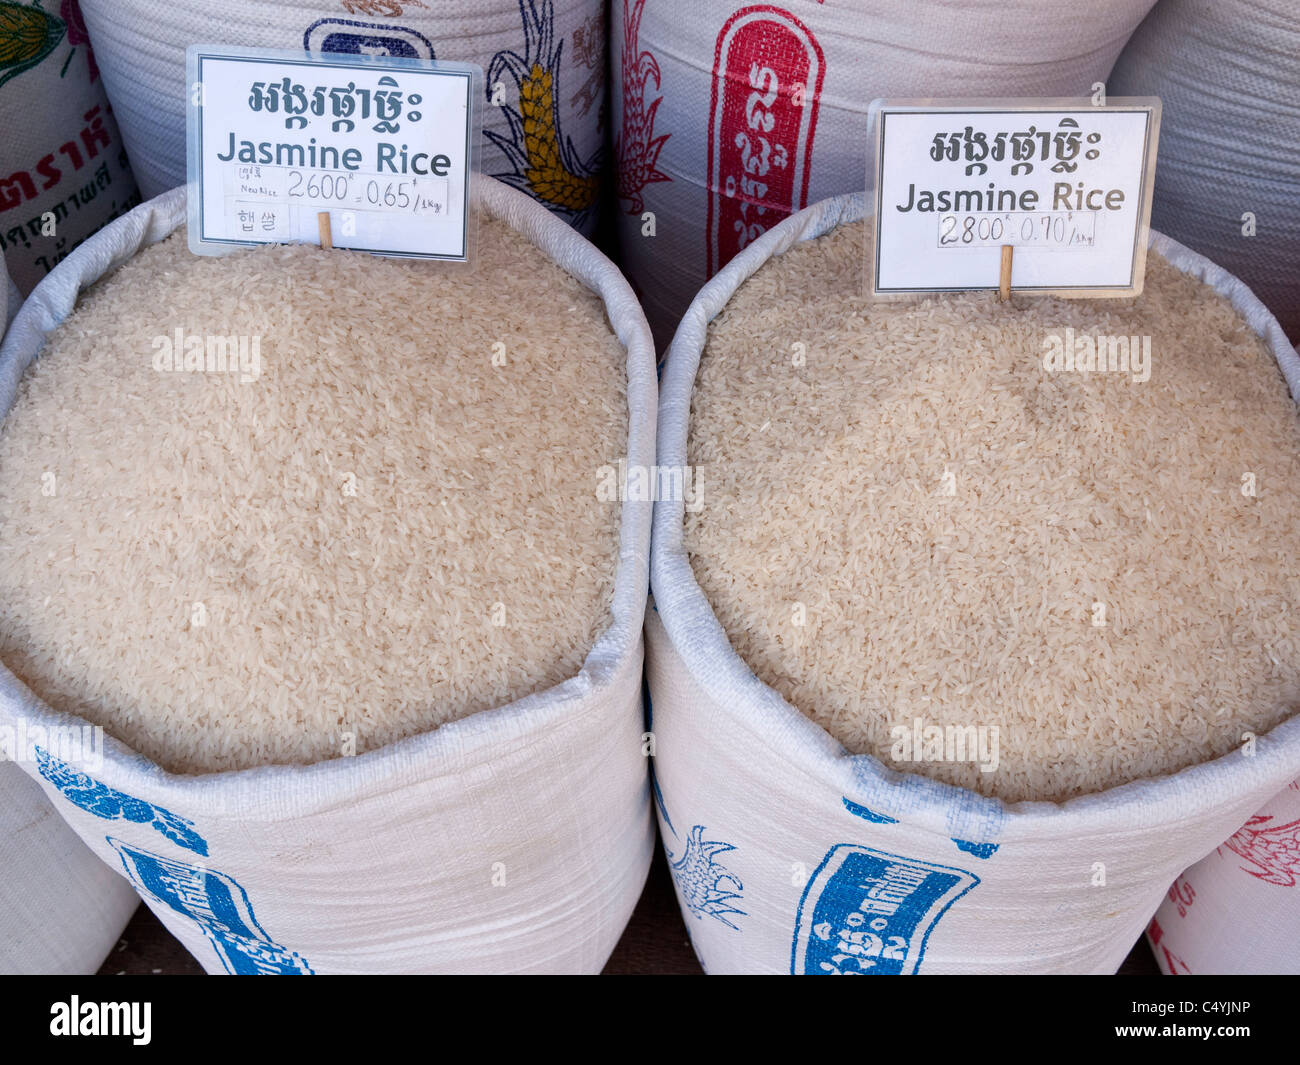 Sacks of white jasmine rice for sale at the Old Market, Siem Reap, Cambodia - Stock Image